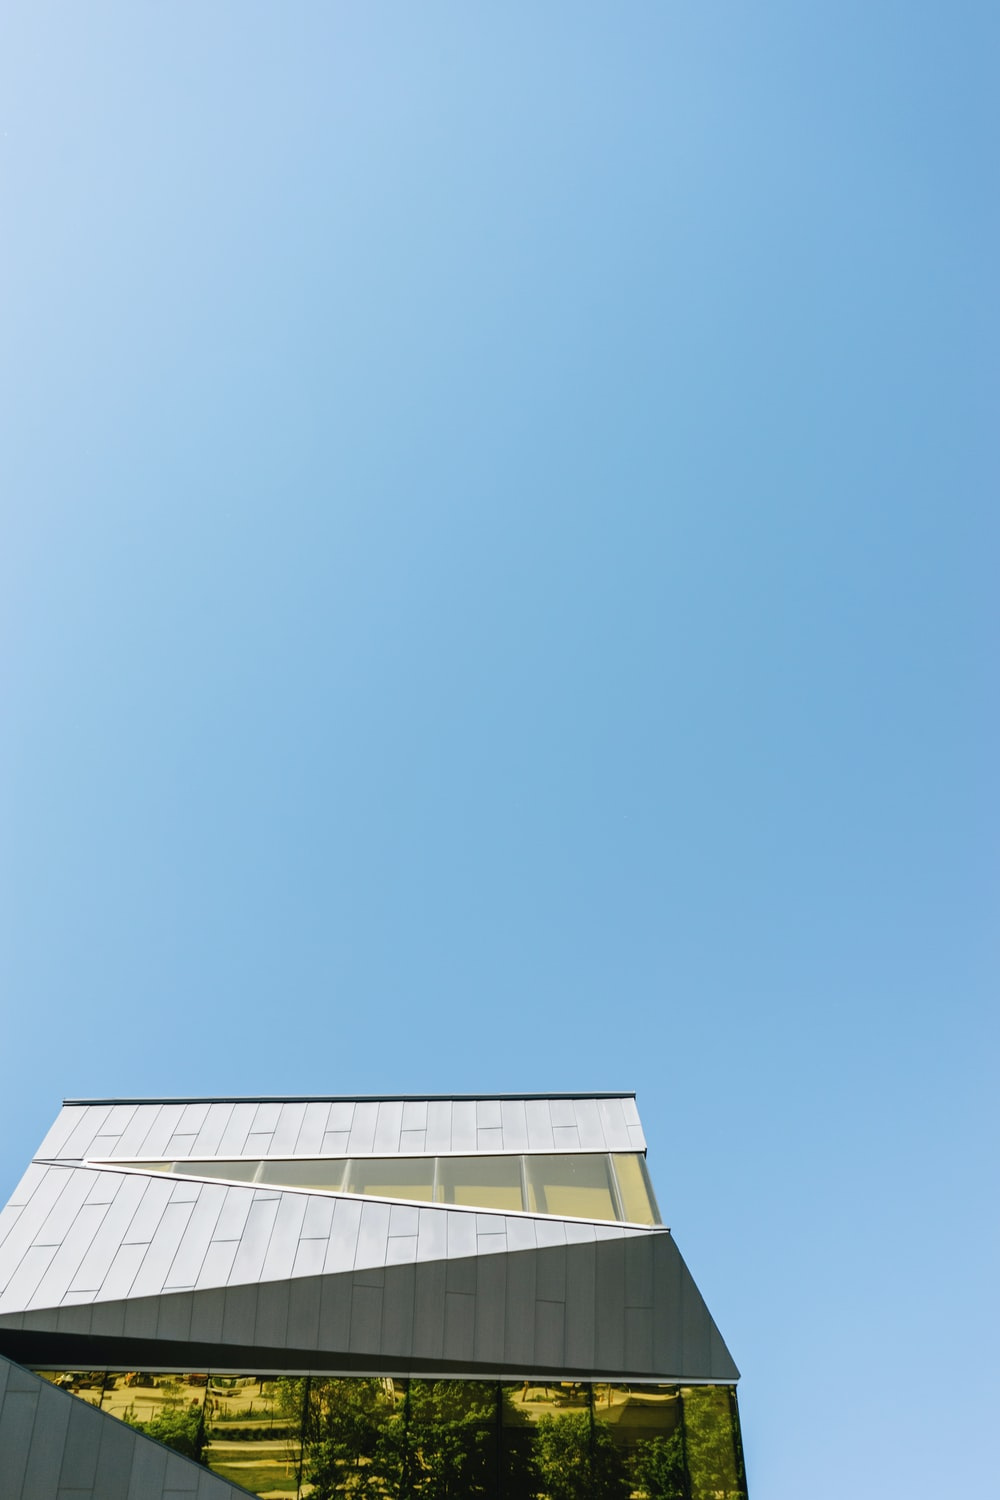 low-angle photography of white concrete building under clear blue sky